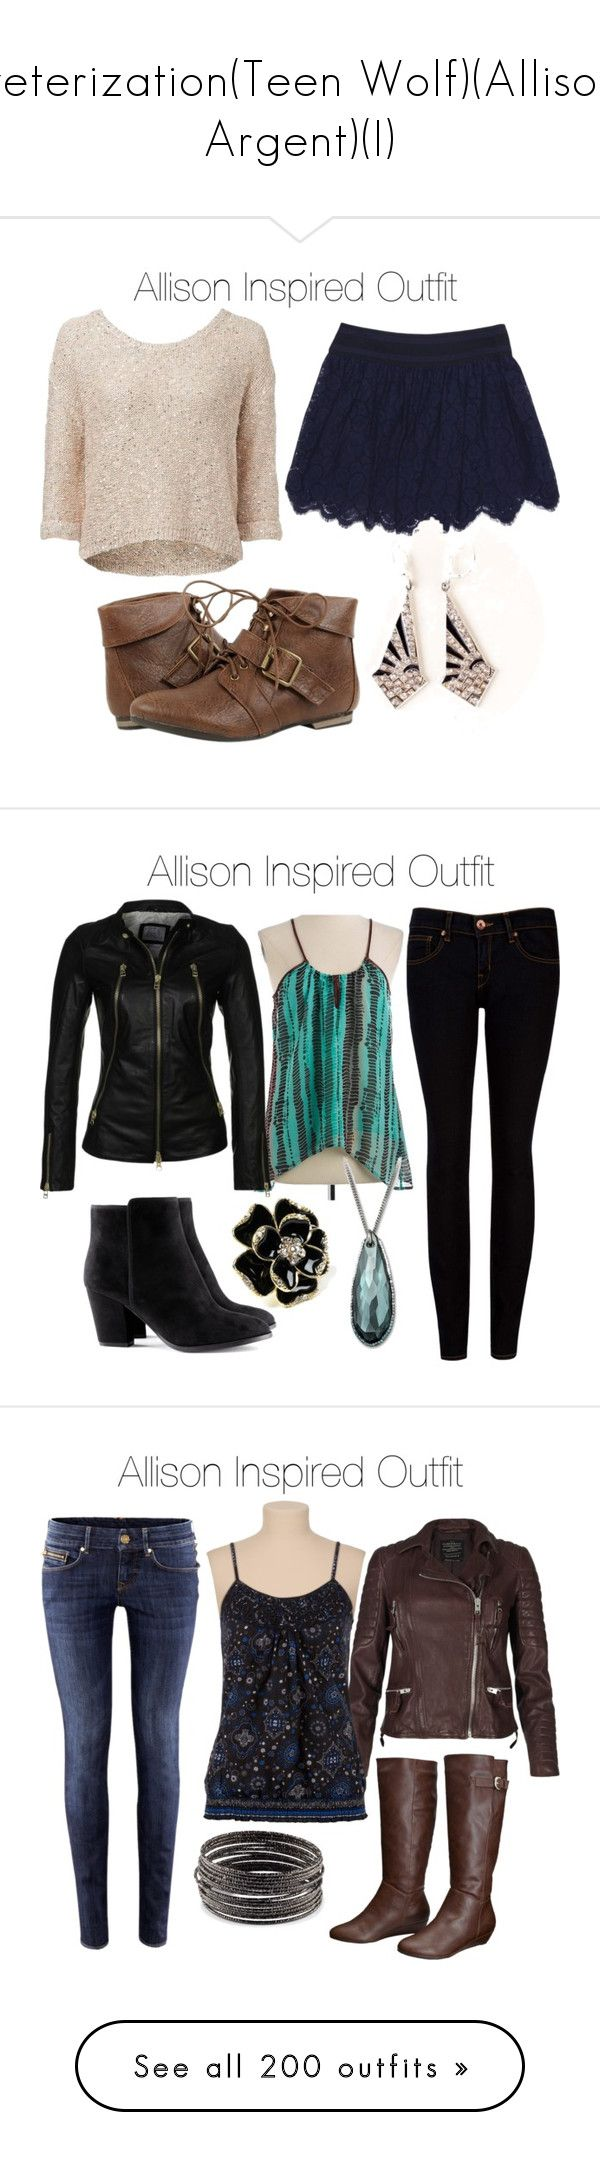 """veterization(Teen Wolf)(Allison Argent)(I)"" by nessiecullen2286 ❤ liked on Polyvore featuring Forever New, Milly, Buffalo David Bitton, Ted Baker, Swarovski, Addition by SLY 010, Amrita Singh, H&M, AllSaints and Mossimo Supply Co."